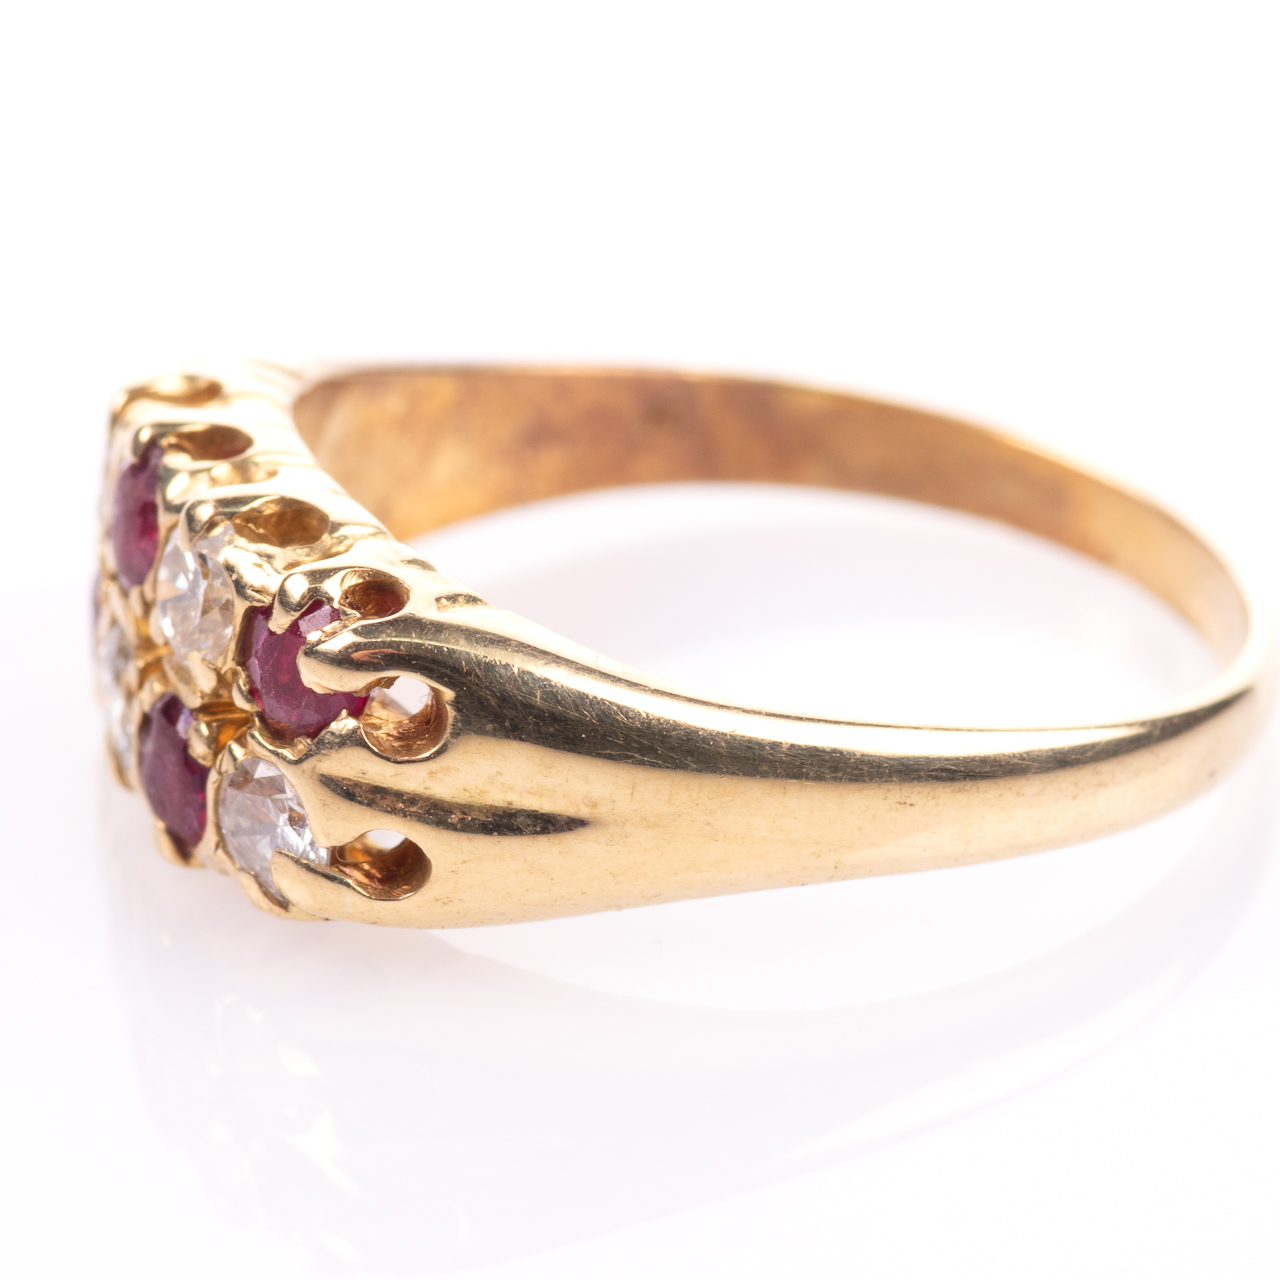 18ct Gold 0.60ct Ruby & 0.50ct Diamond Ring - Image 4 of 7